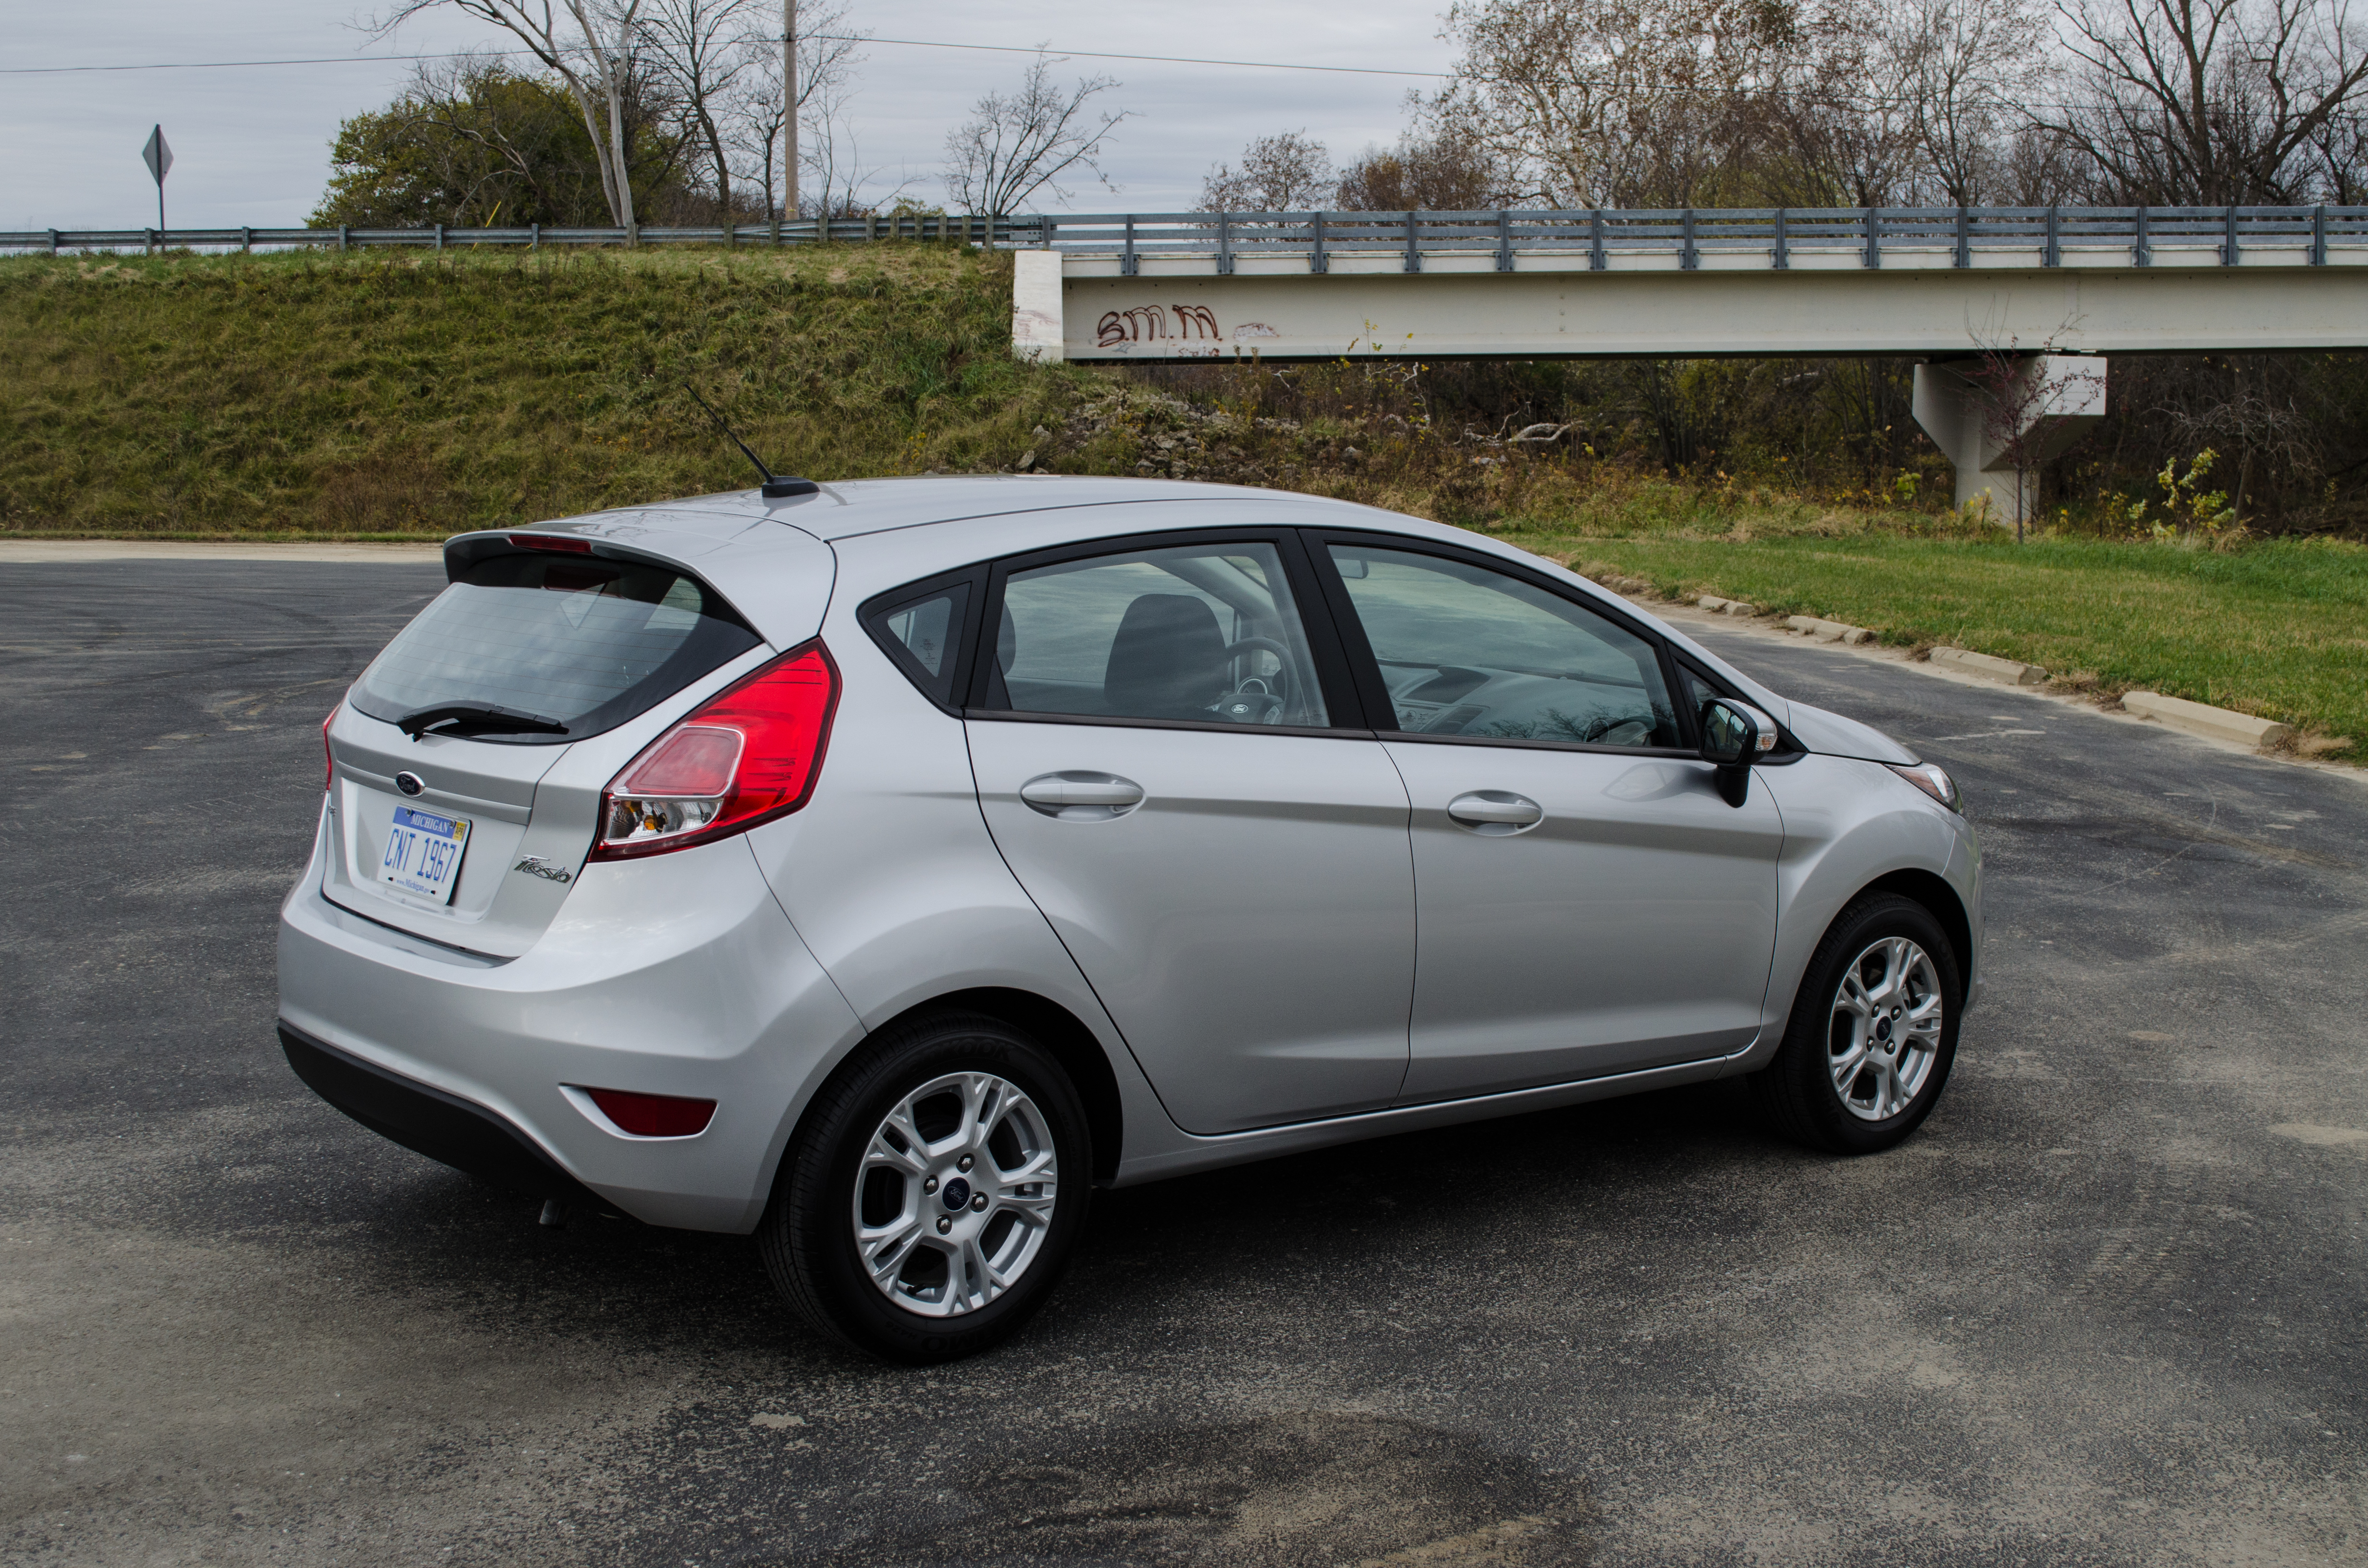 ford fiesta images #4